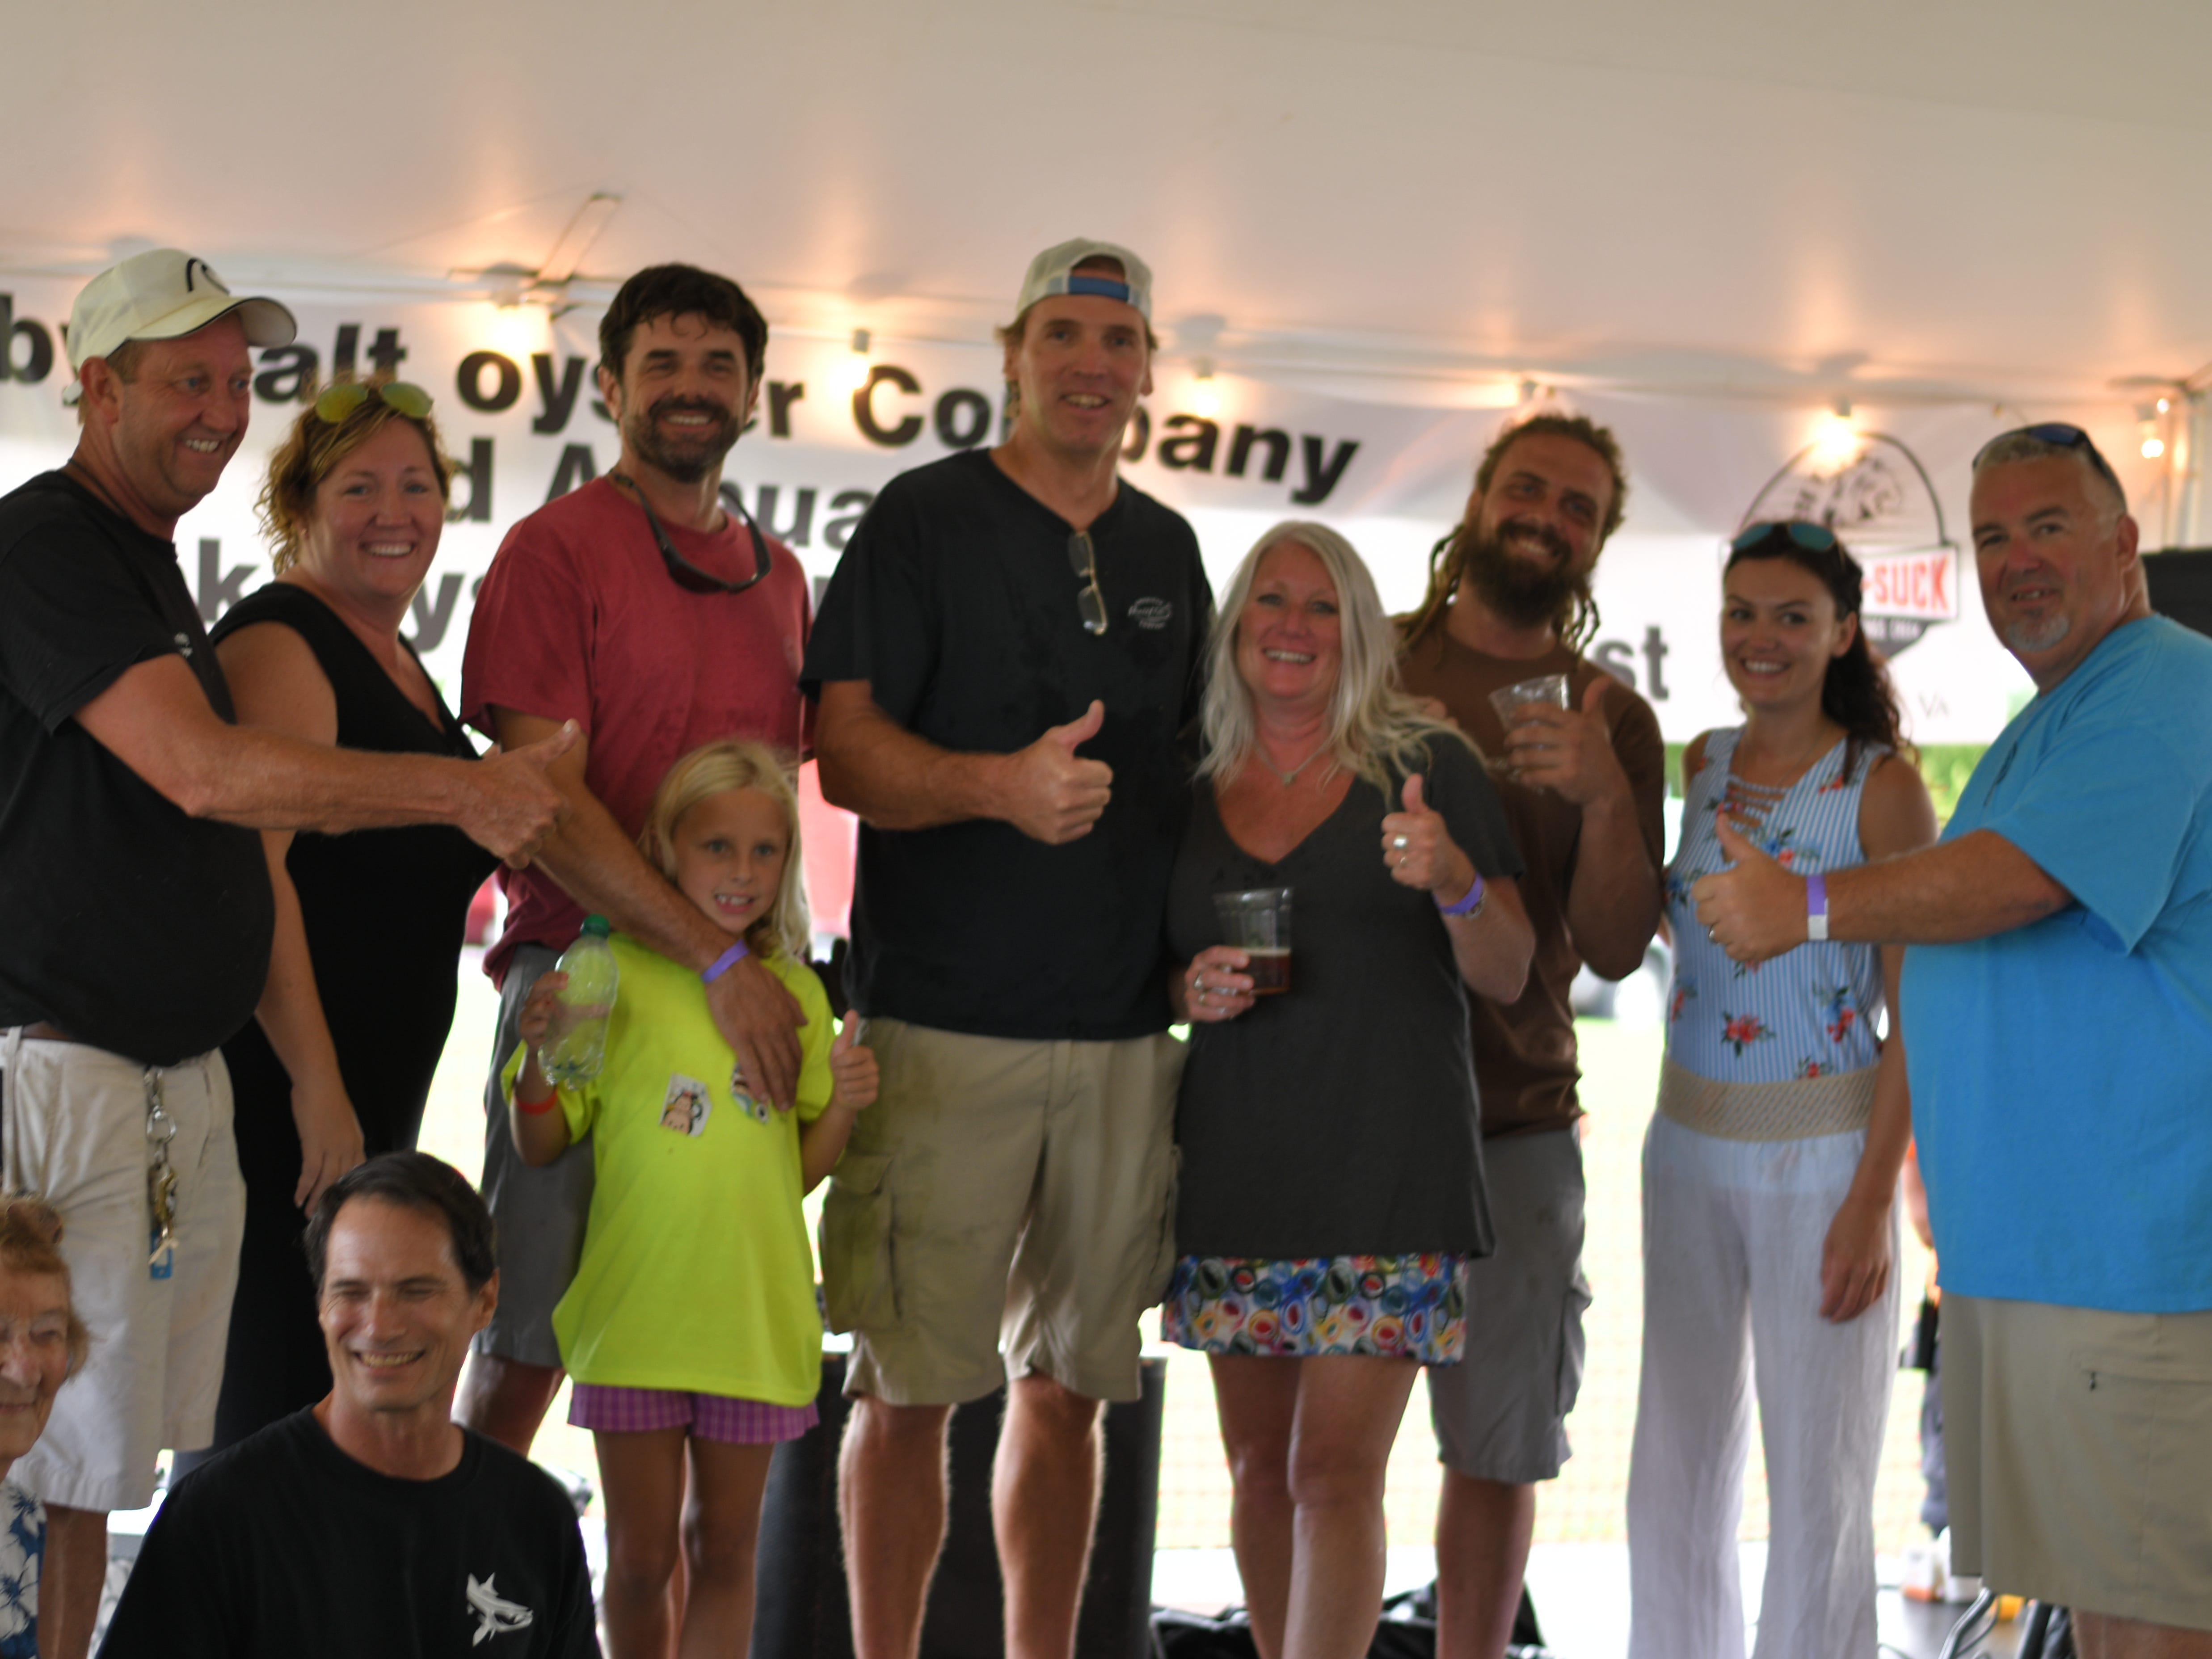 From left: Cape Charles Mayor Smitty Dize; first place winners Tiffany Mohr and Chris Buck; second place winners Joe Peirson and Sally Lewin; third place winners Scott Wivell and Rachel Savage; and announcer Flea Emily; pose for a picture after the 3rd Annual Oyster Eating Contest on Aug. 3 at the Oyster Farm in Cape Charles.